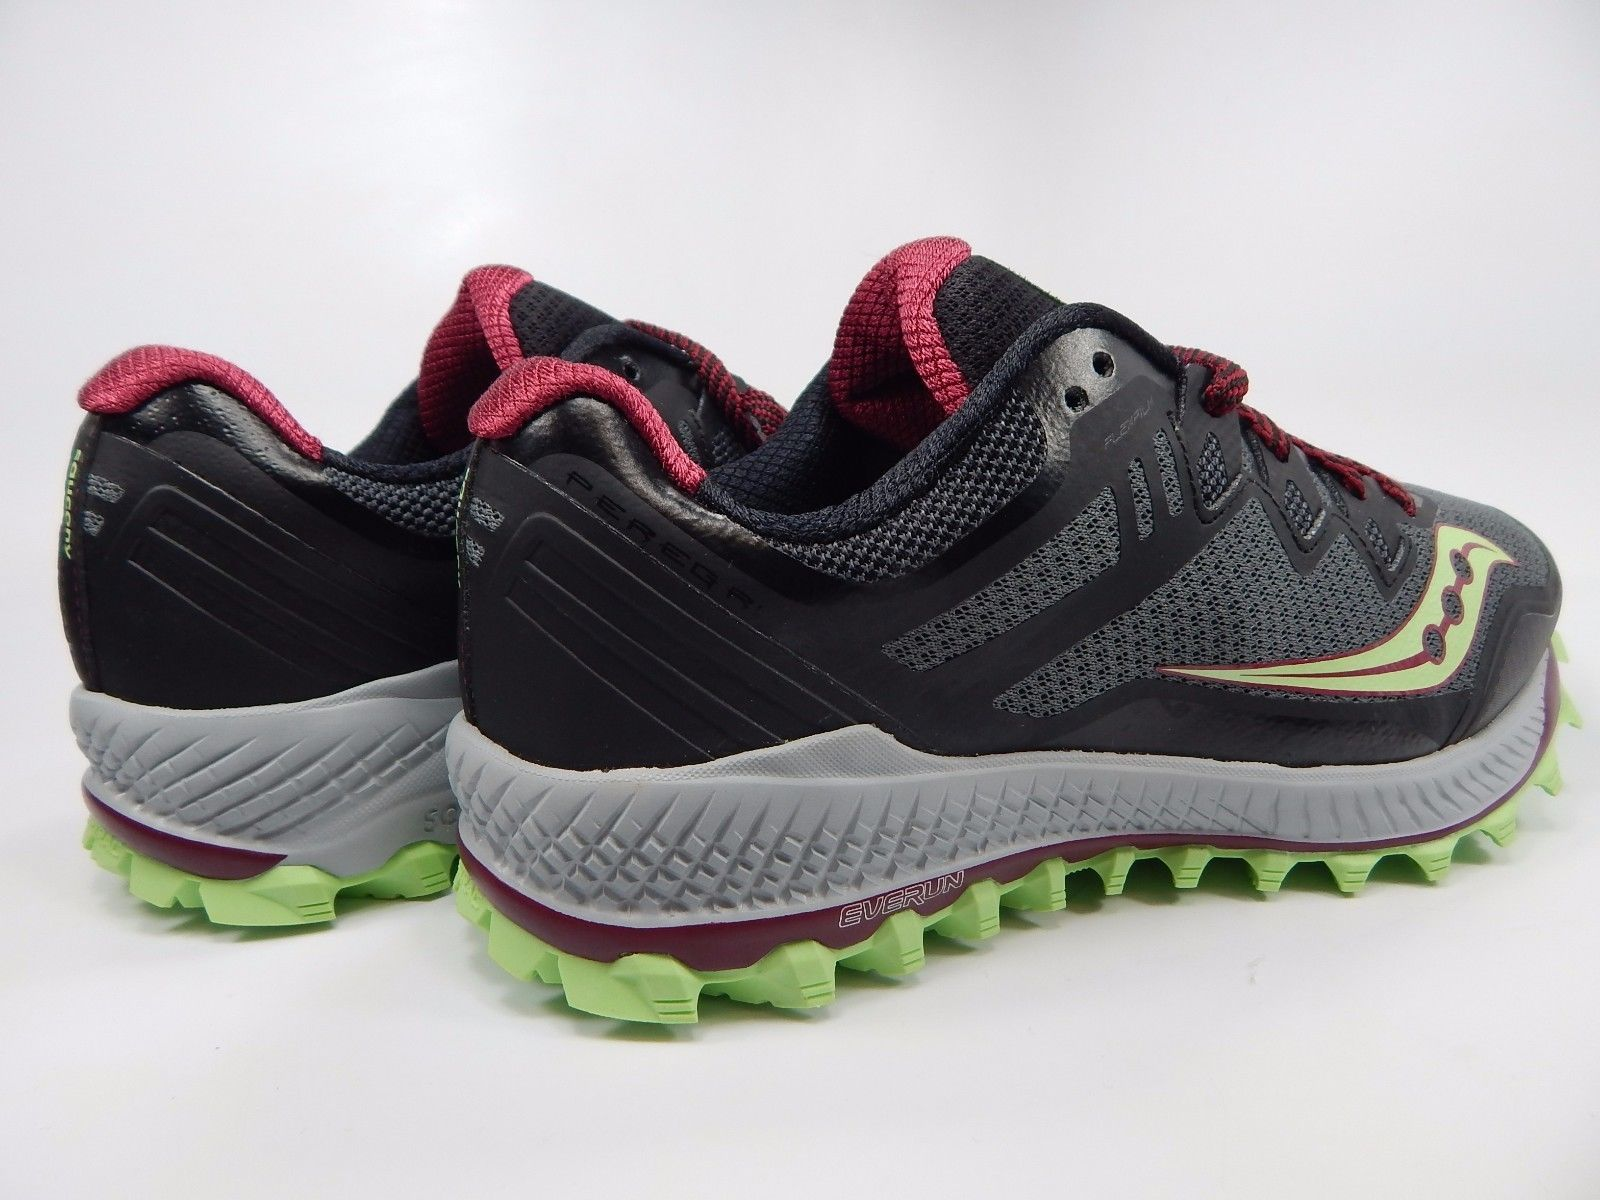 Saucony Peregrine 8 Women's Running Shoes Size US 8 M (B) EU 39 Black S10424-1